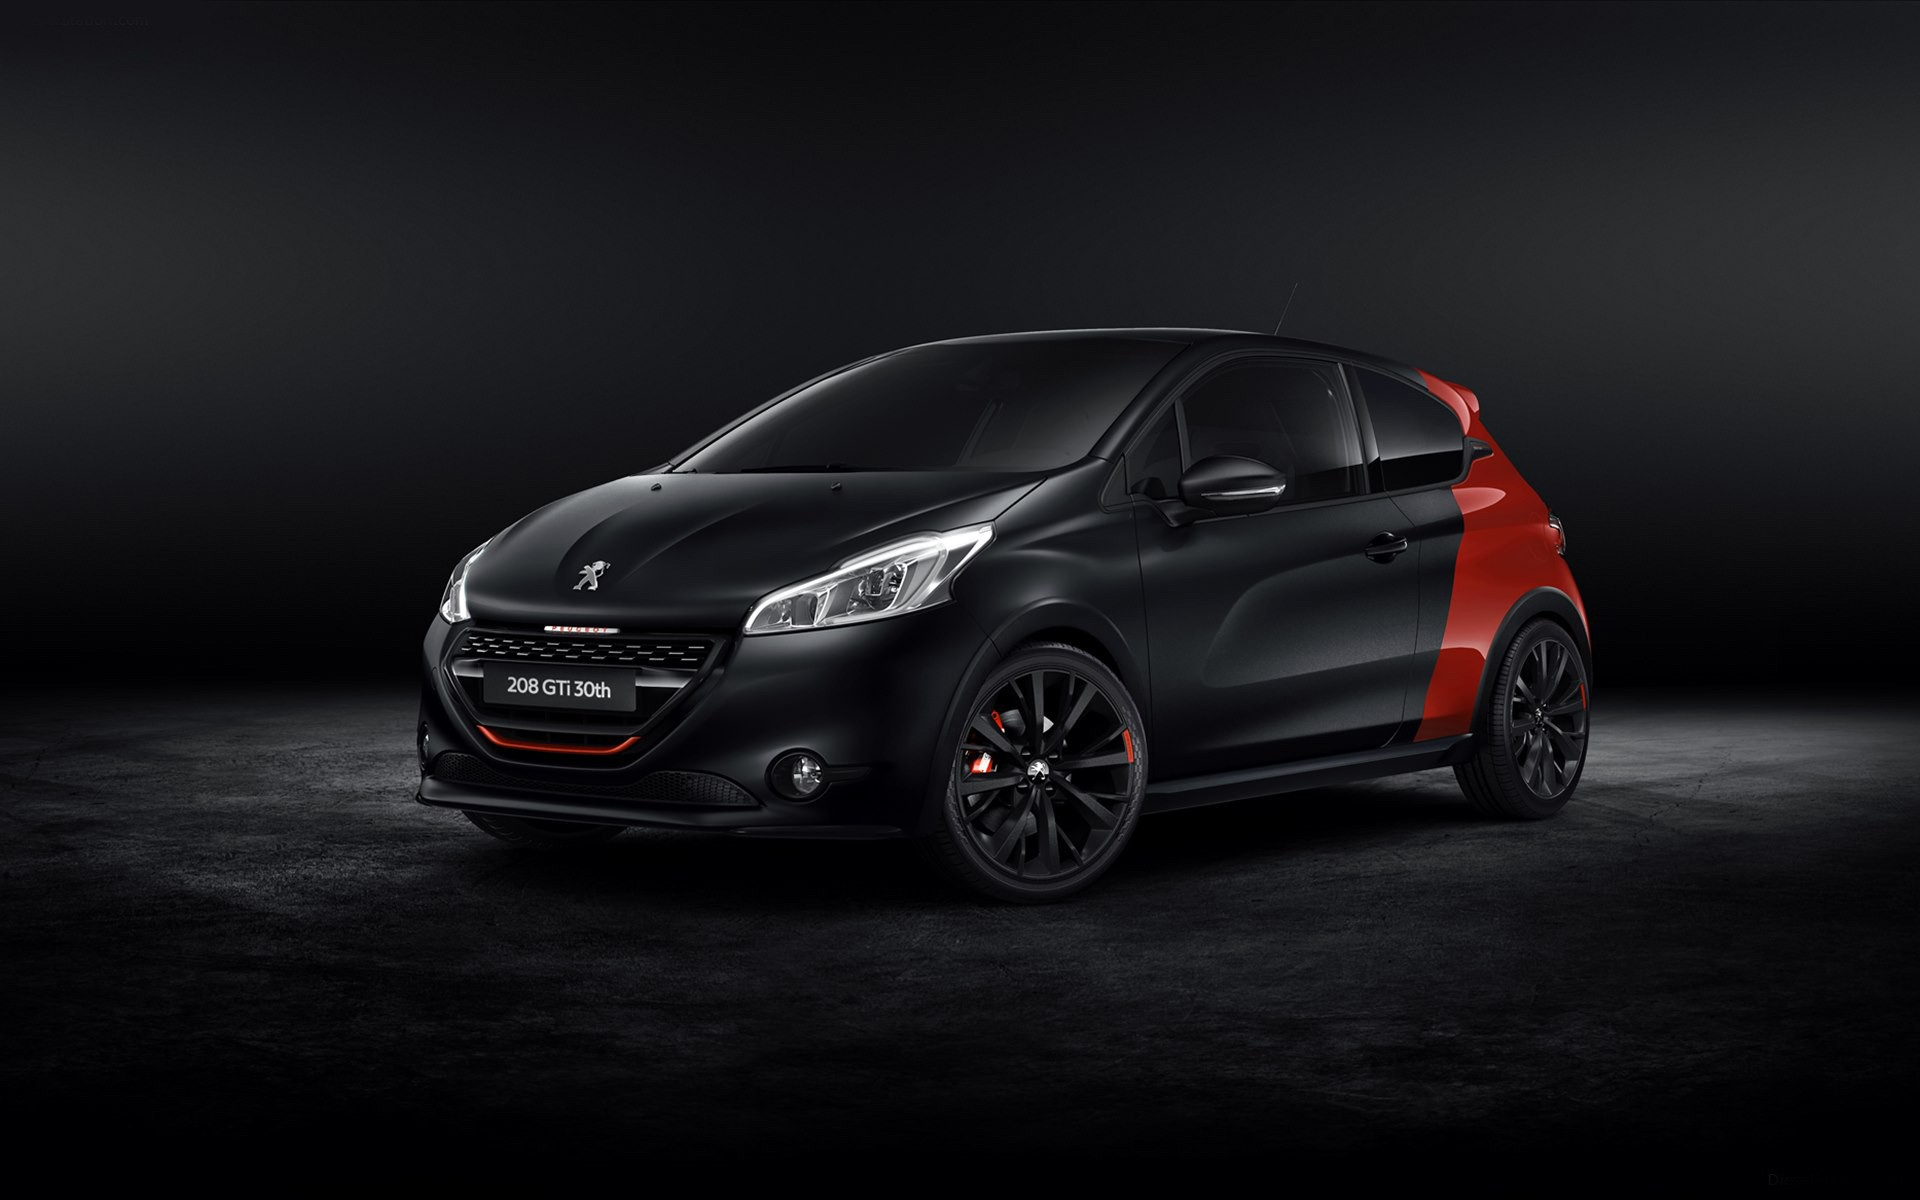 2014 Peugeot 208 Gti 30th Anniversary Limited Edition